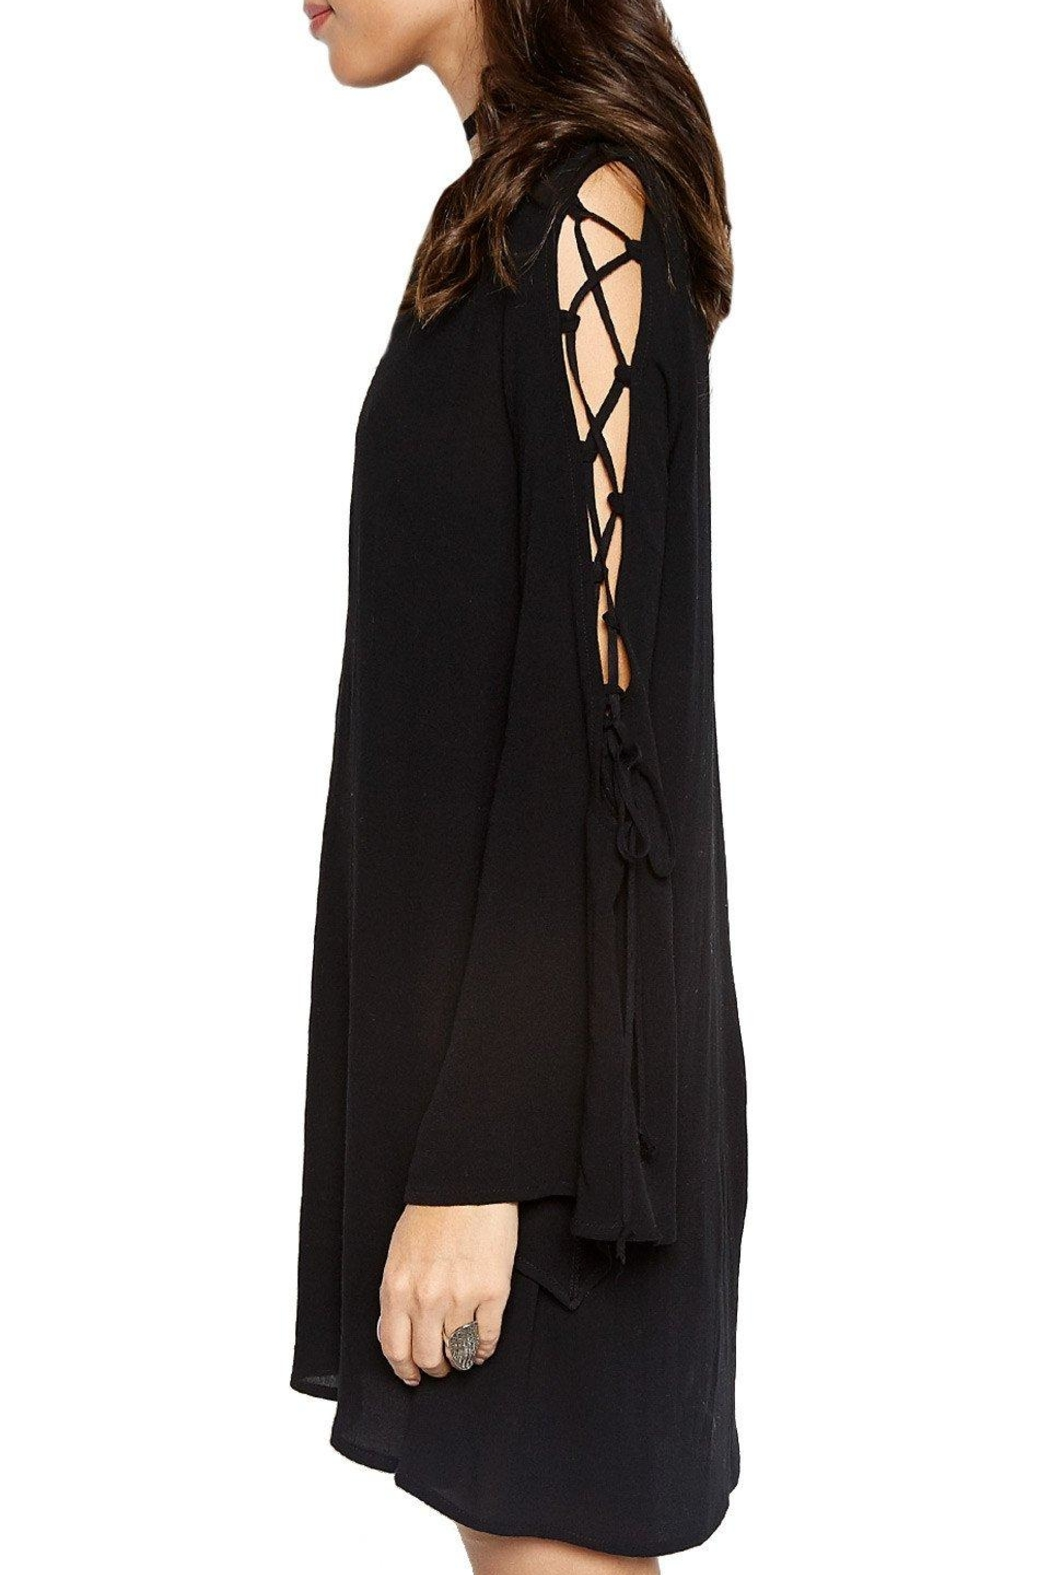 Michael Lauren Lace Up Bell Sleeve - Side Cropped Image